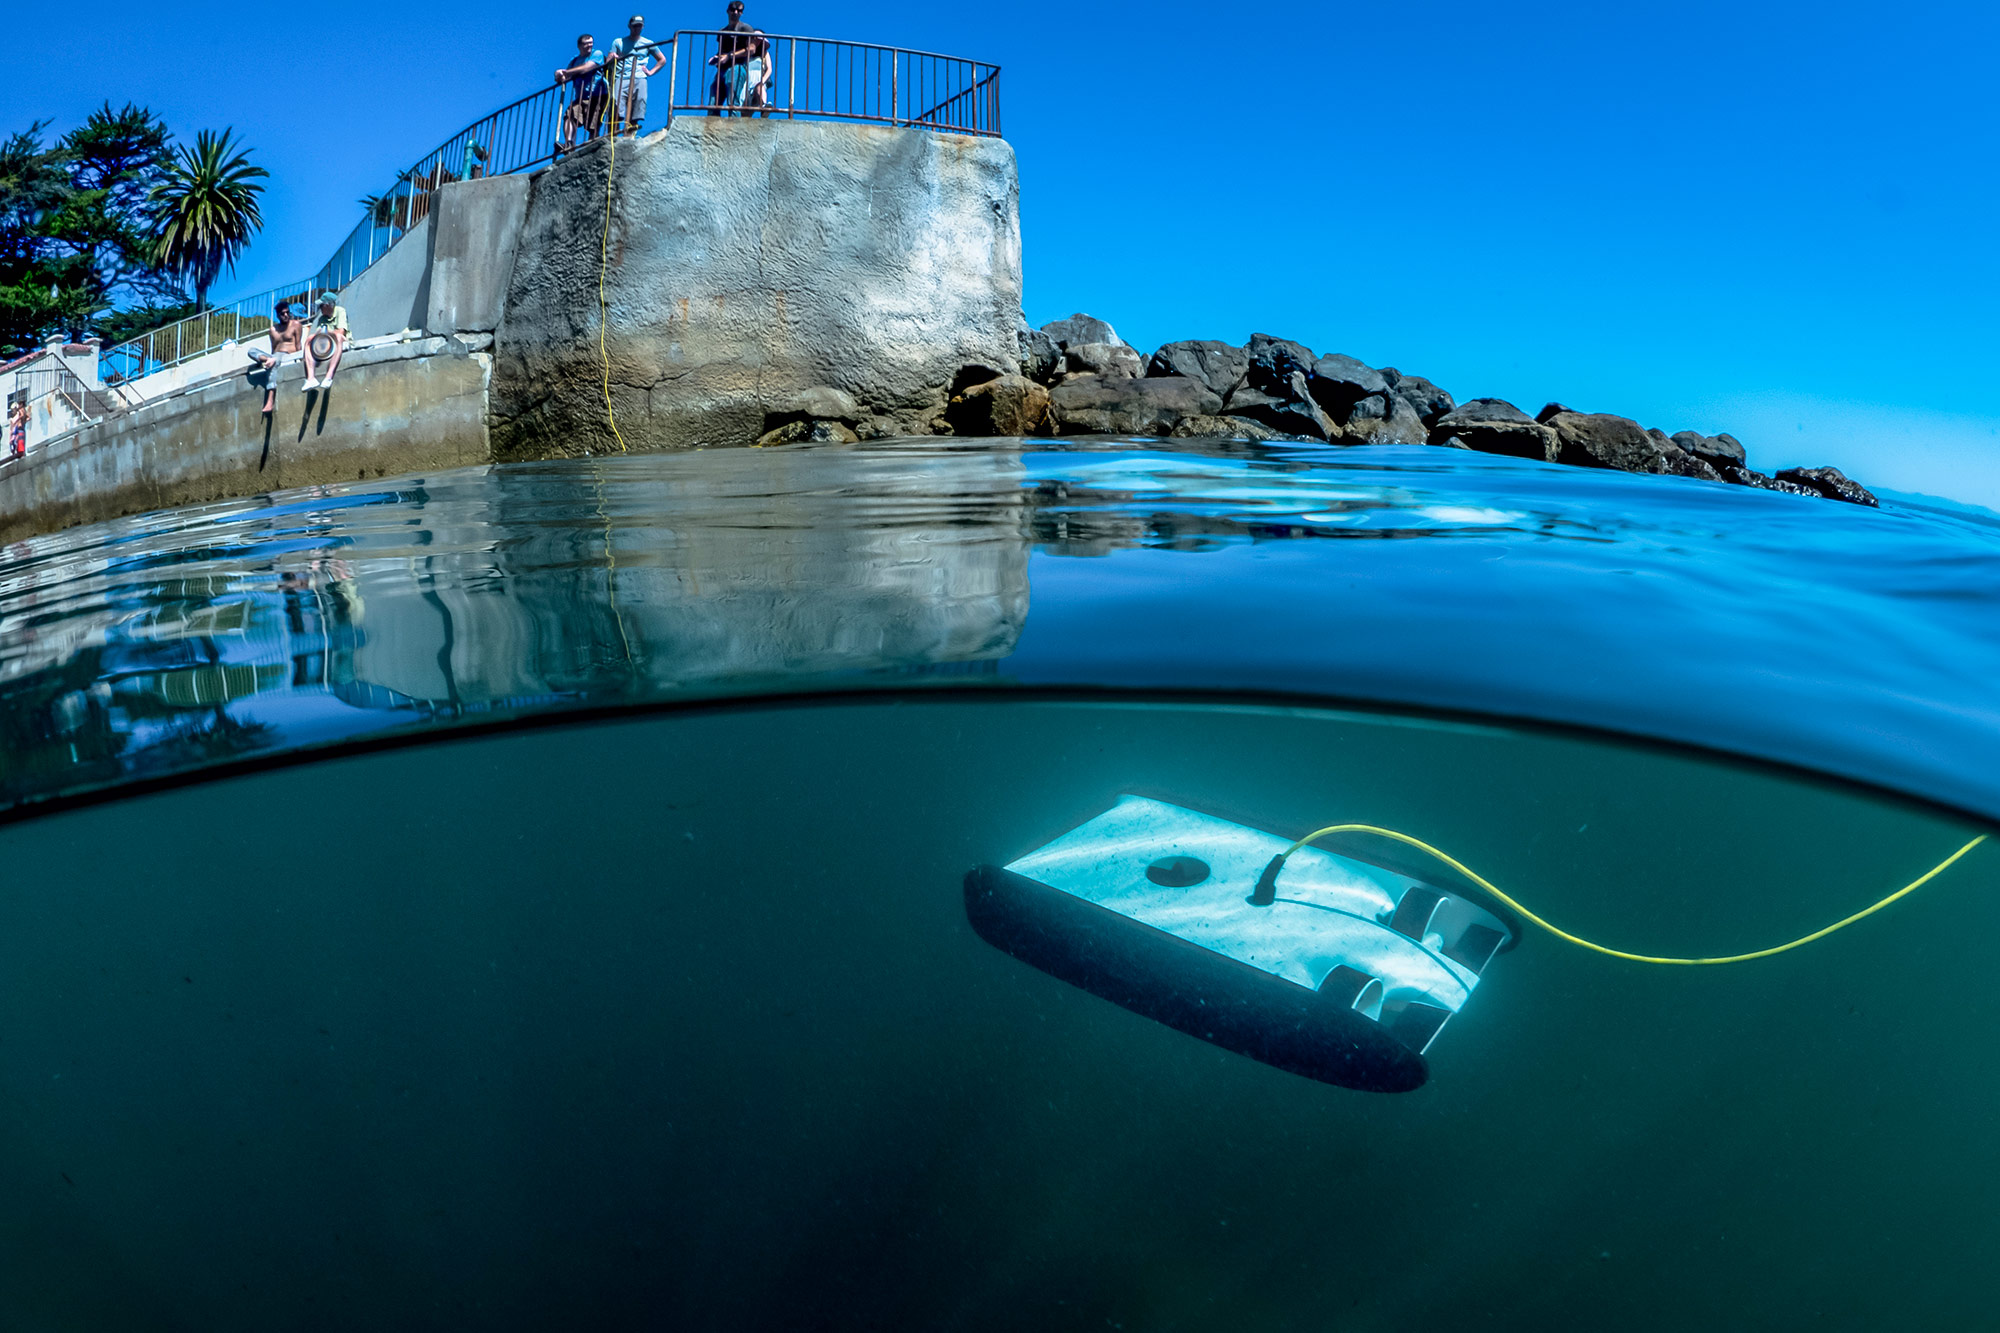 David_Lang_OpenROV_Trident_drone_swims_by_remote_control